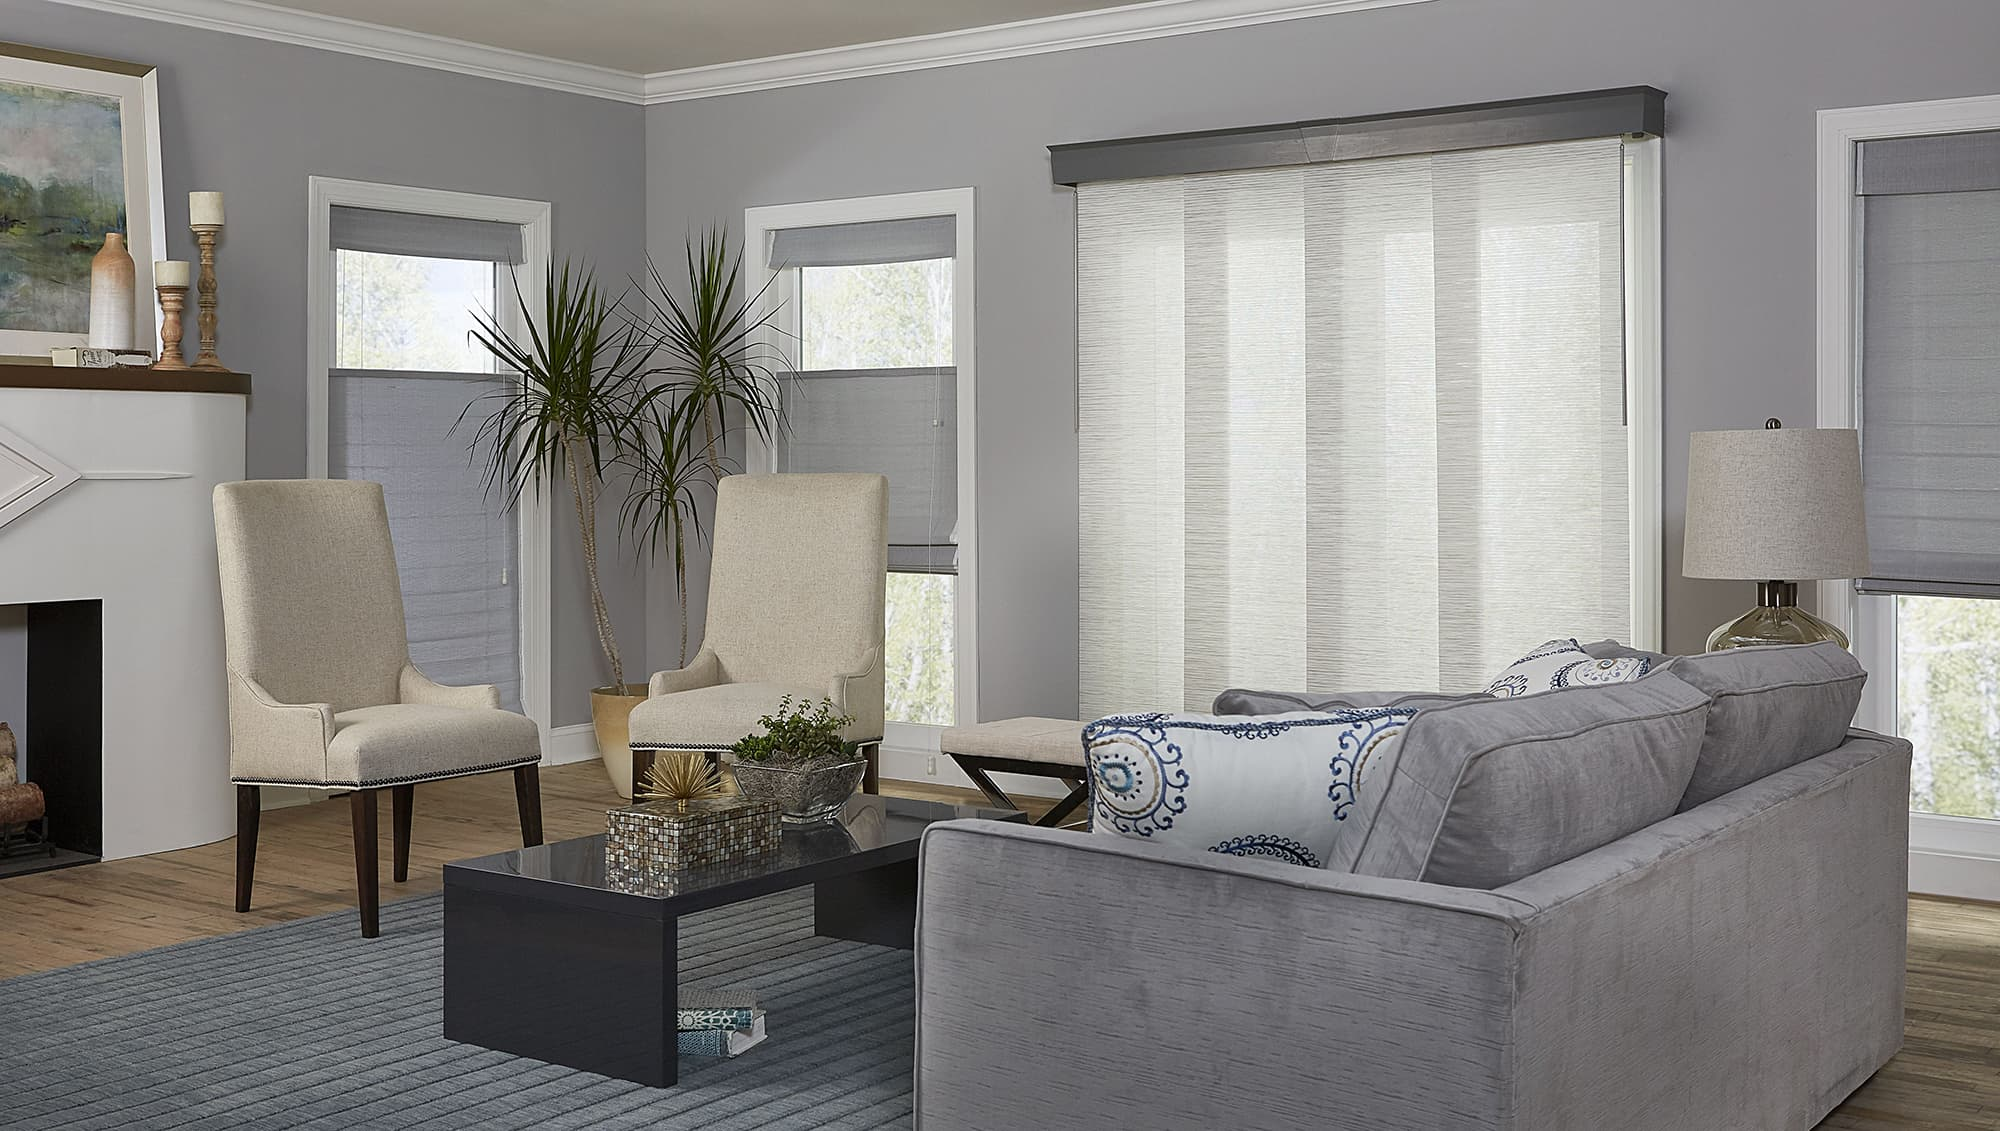 Patio Doors Sliding: 10 Things You MUST Know When Buying Blinds For Doors